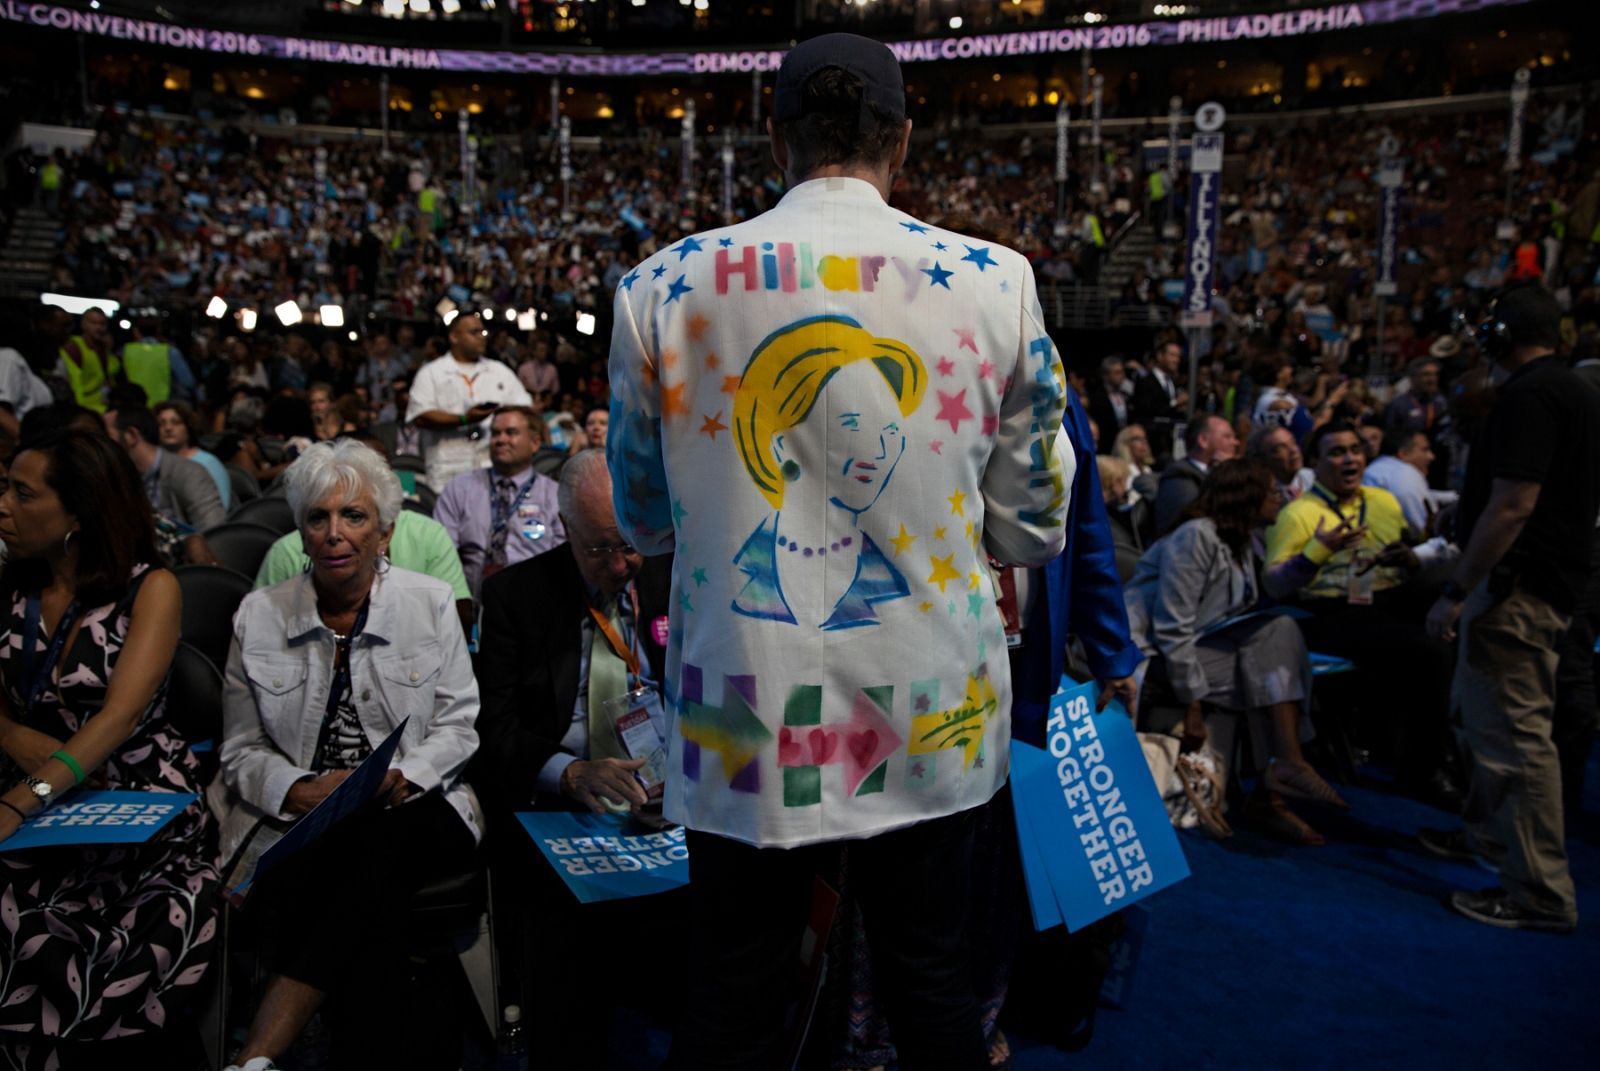 July 26, 2016 - Philadelphia, Pennsylvania - A Hillary Clinton supporter wearing Her colors, leads delegates into pro-Clinton chants during the Democratic National Convention in Philadelphia, Pennsylvania.